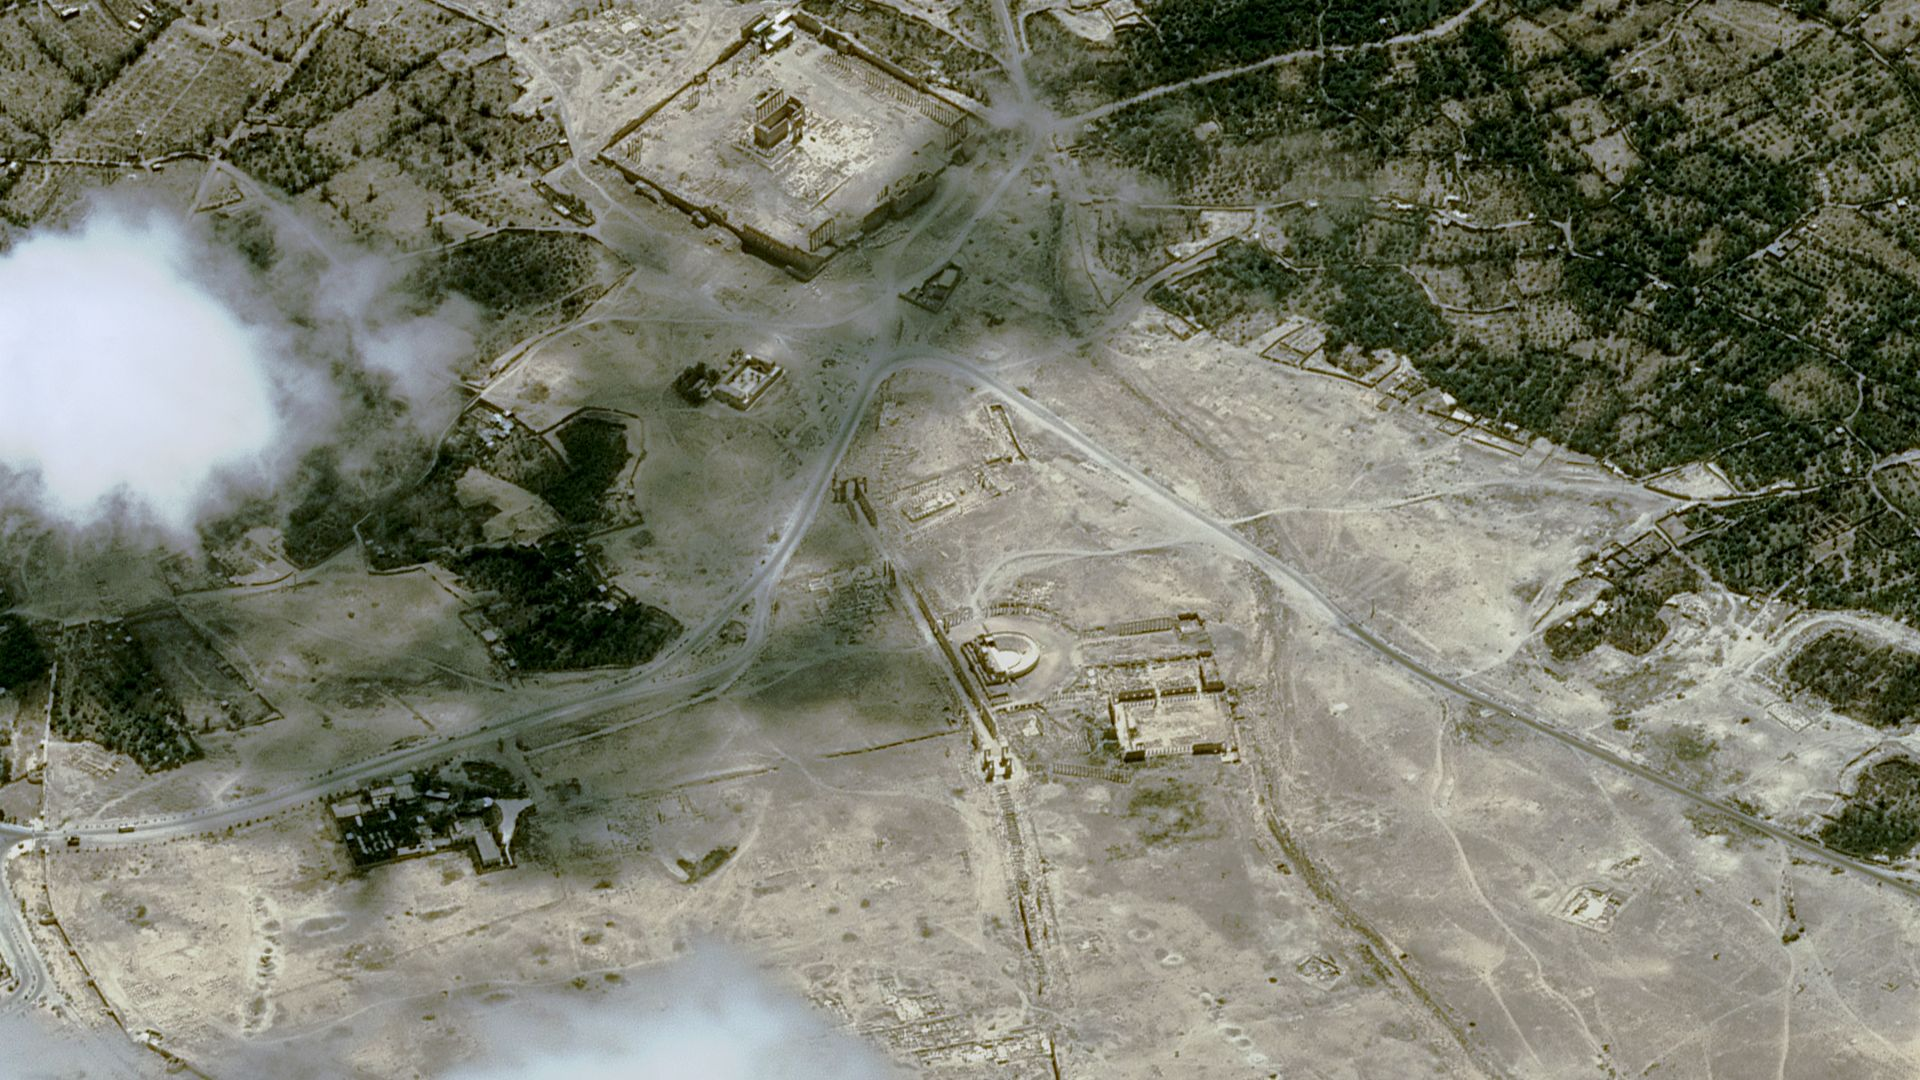 Satellite Pleiades - Palmyre - Syrie - temple de Baalshamin - après destruction par EI - 25 août 2015 - CNES – Airbus Defence and Space - UNITAR